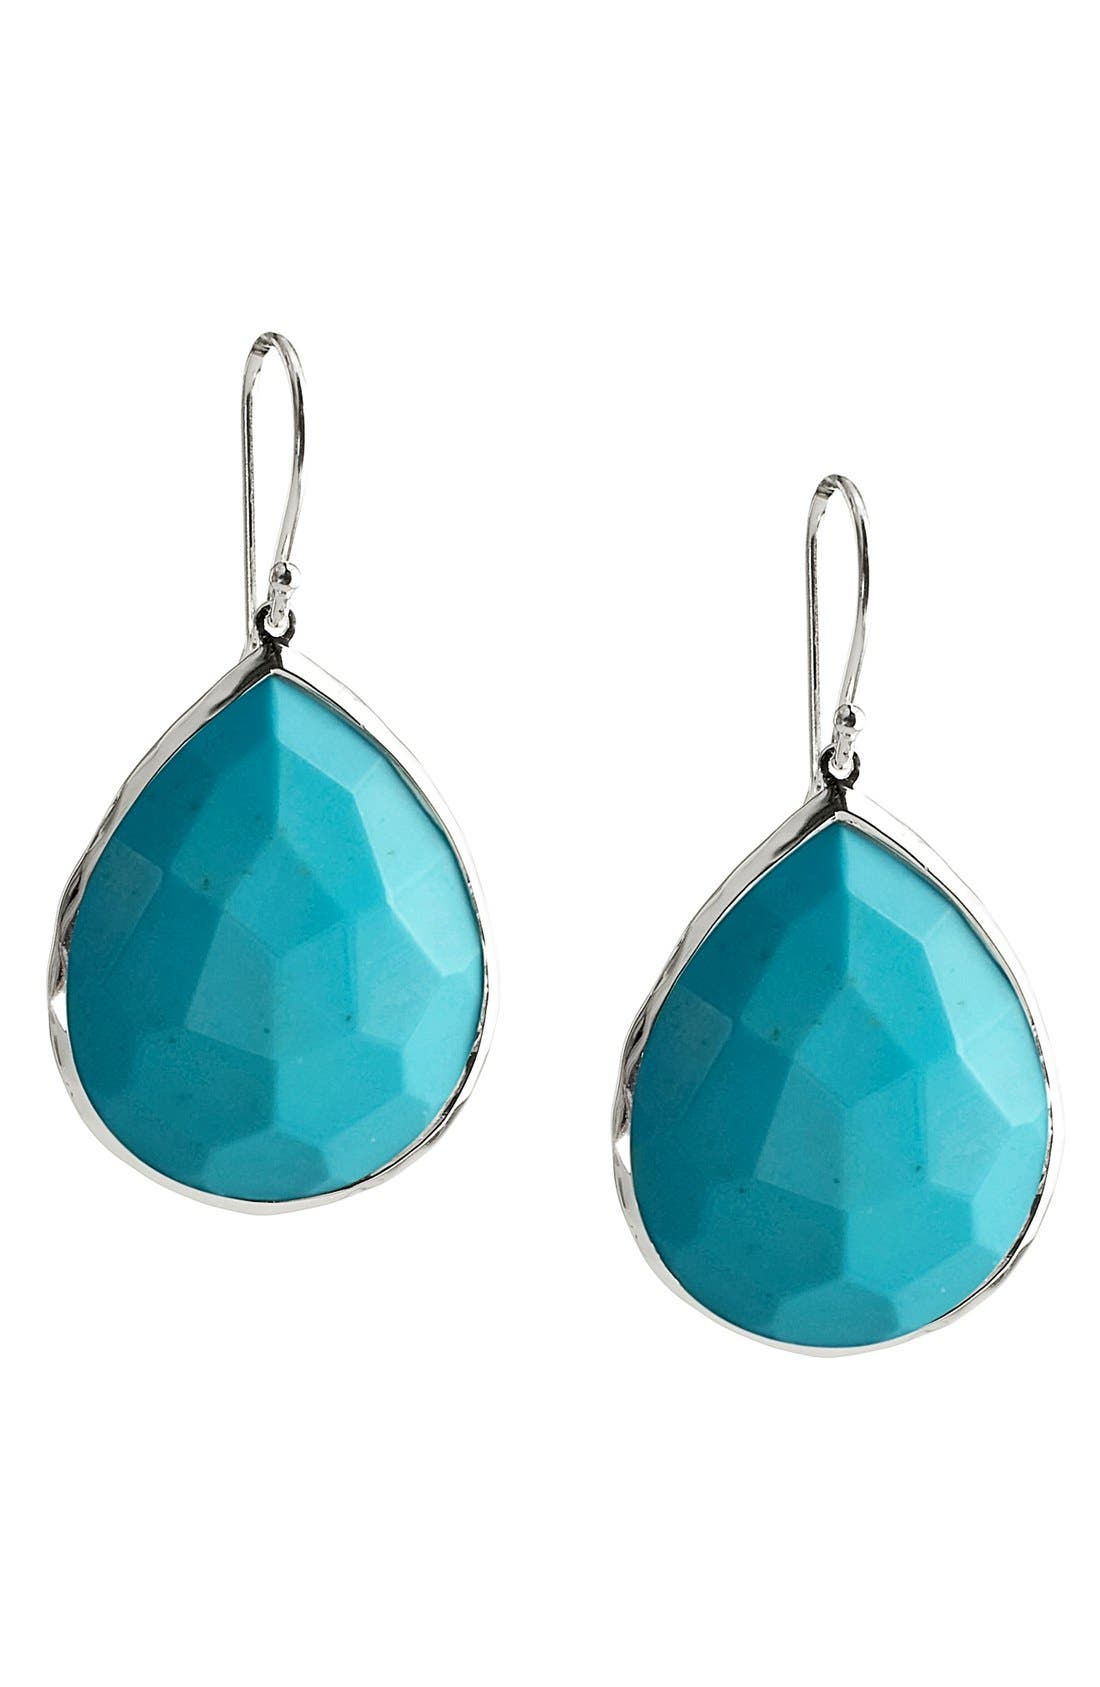 Rock Candy Large Teardrop Earrings,                         Main,                         color, Silver/ Turquoise